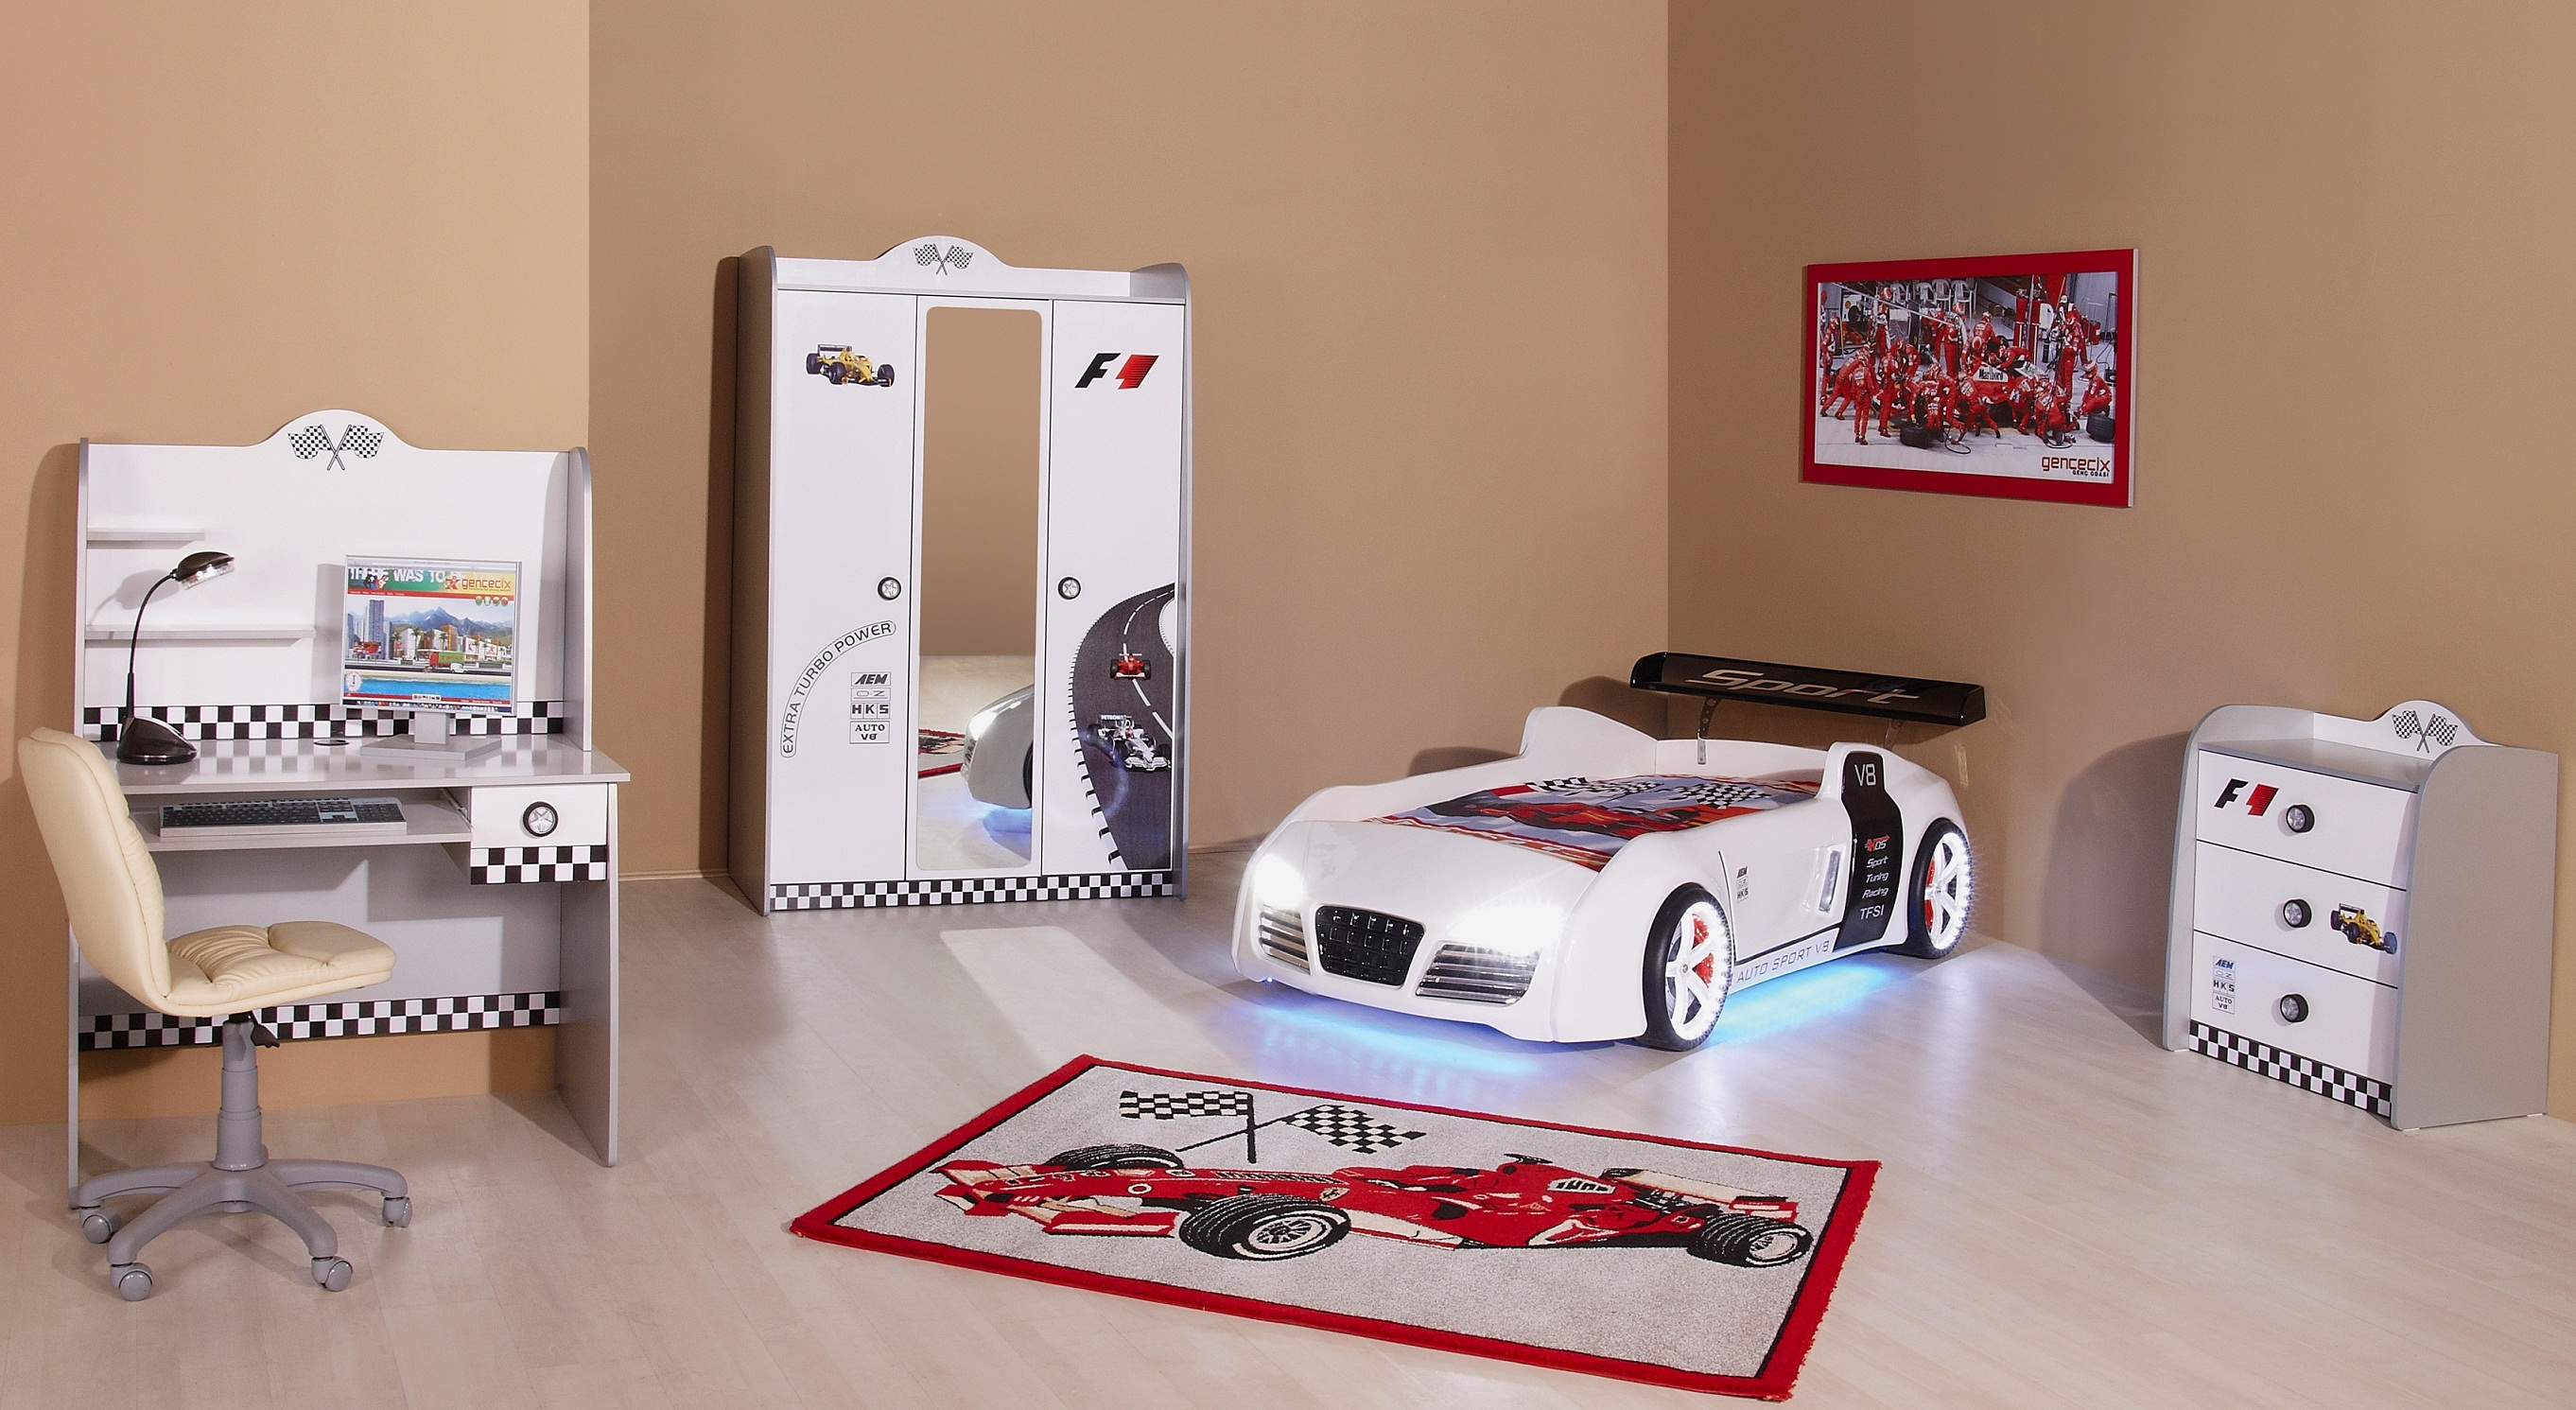 autobett kinder autobetten jungen kinderbett. Black Bedroom Furniture Sets. Home Design Ideas